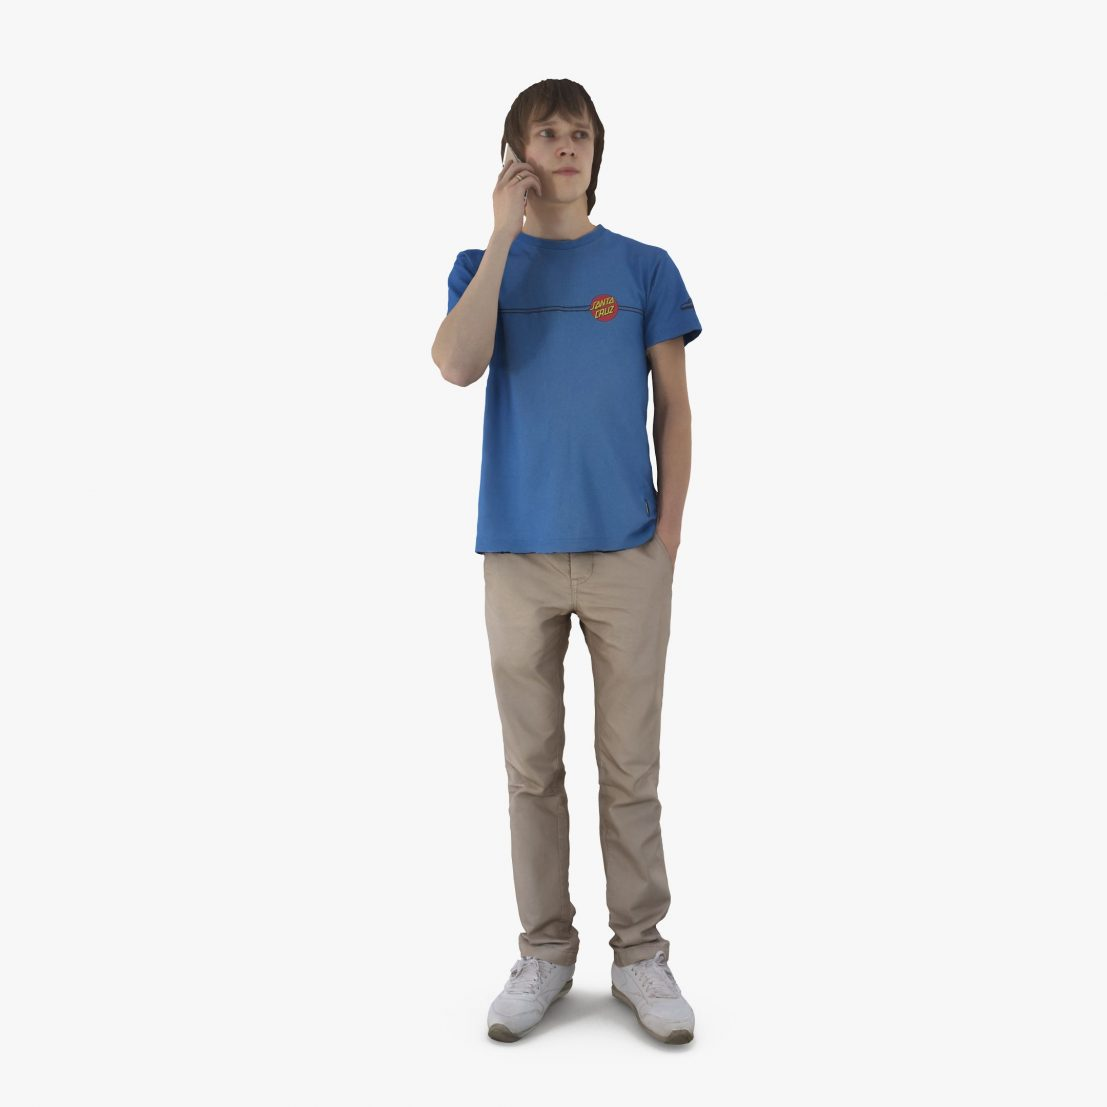 Boy with Phone 3D Model | 3DTree Scanning Studio